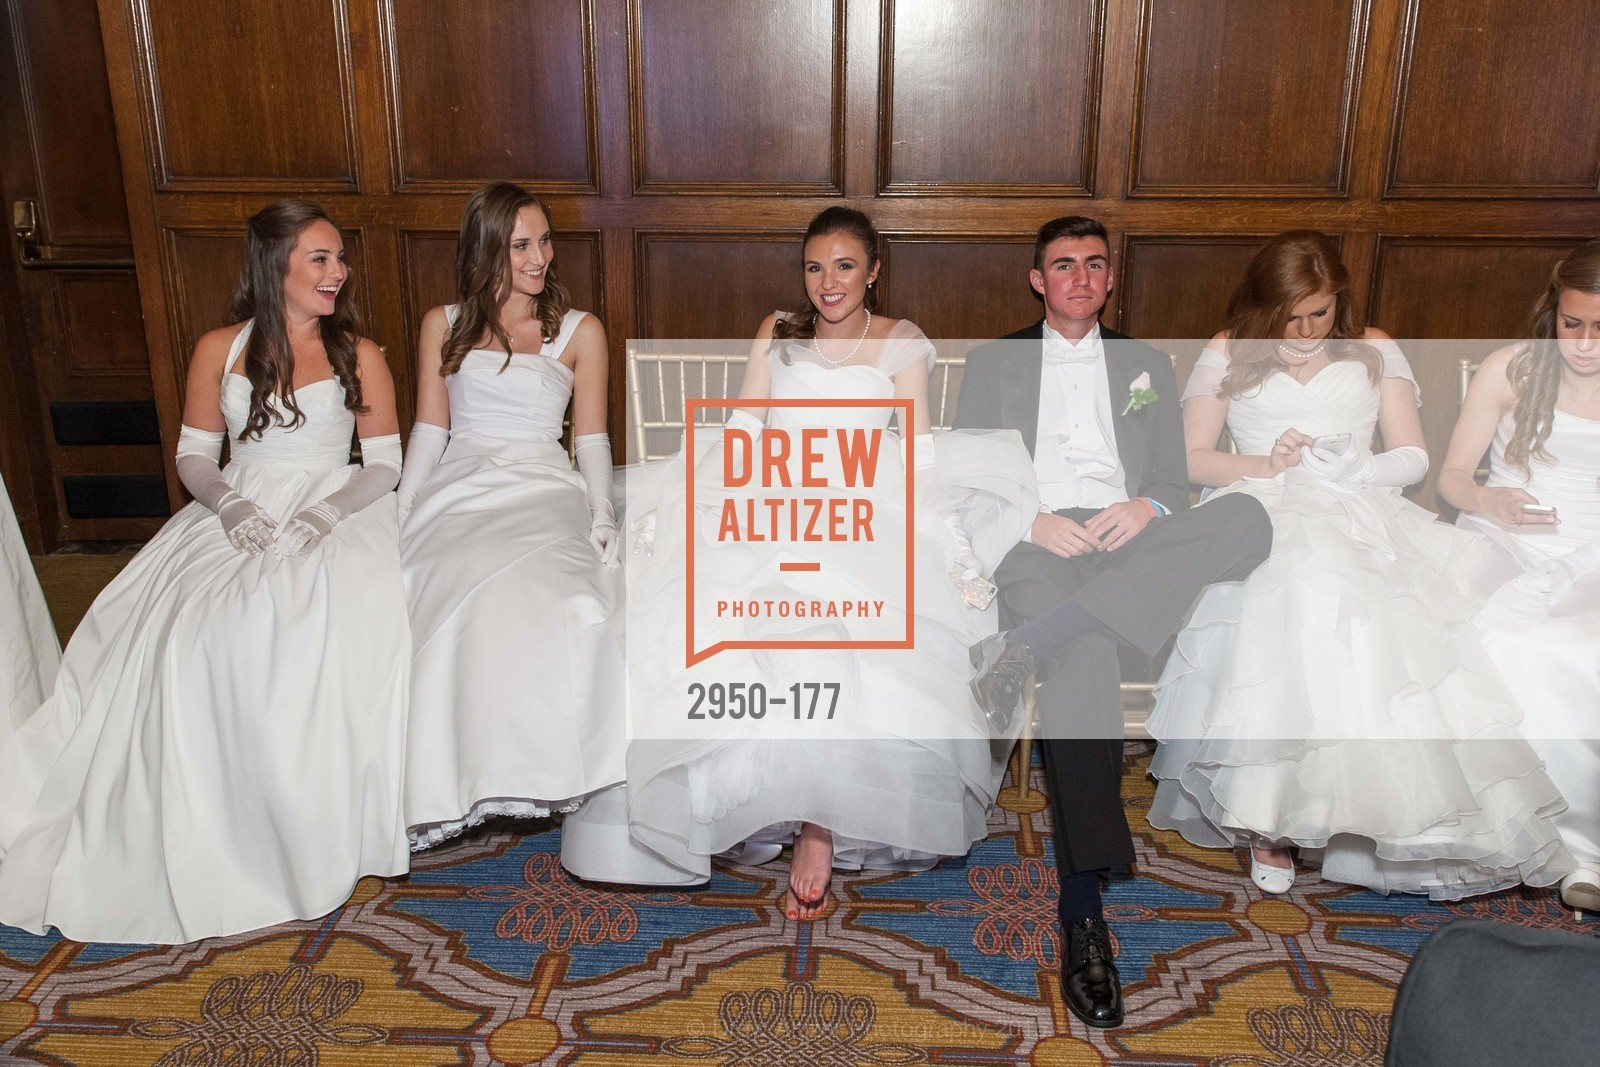 Hailey Elizabeth Cusack, Connolly Grace Steigerwald, Jennifer Hannah Baylis, Elias Morrison Schwartz, The 2015 San Francisco Debutante Ball, The Westin St. Francis San Francisco Union Square. 335 Powell St, June 20th, 2015,Drew Altizer, Drew Altizer Photography, full-service agency, private events, San Francisco photographer, photographer california